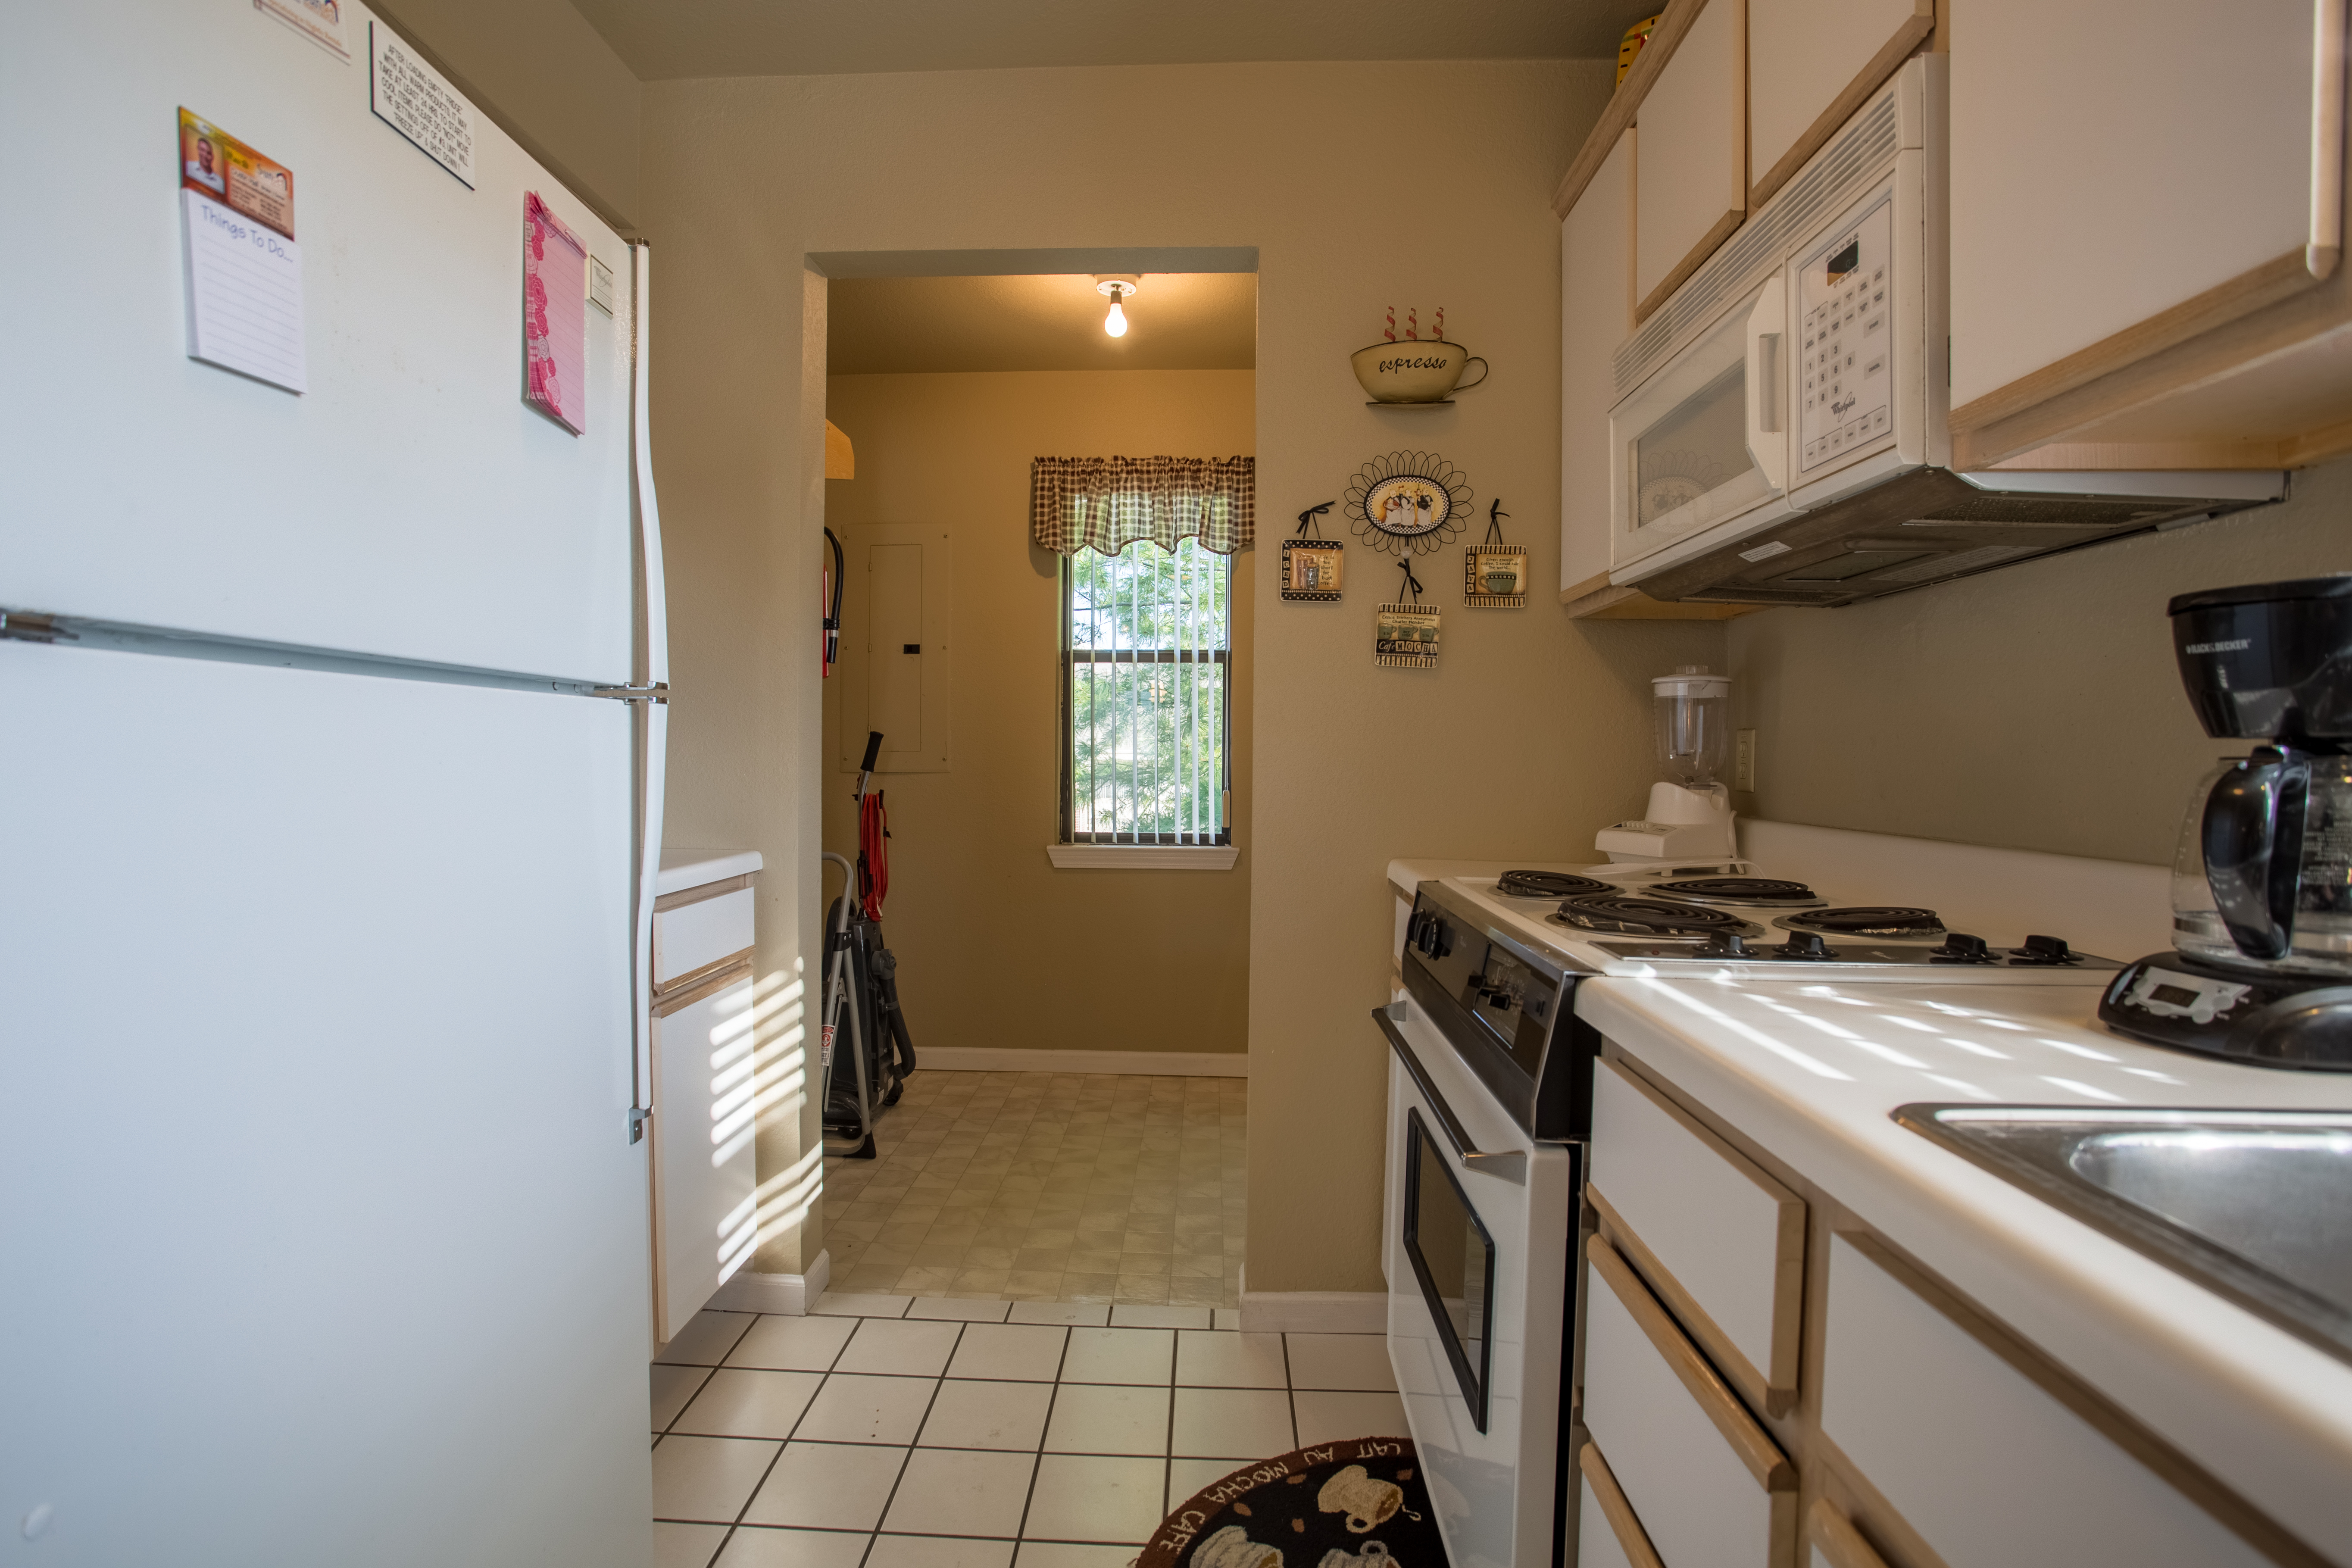 Perfectly On Pointe Delightful 110415 Find Rentals